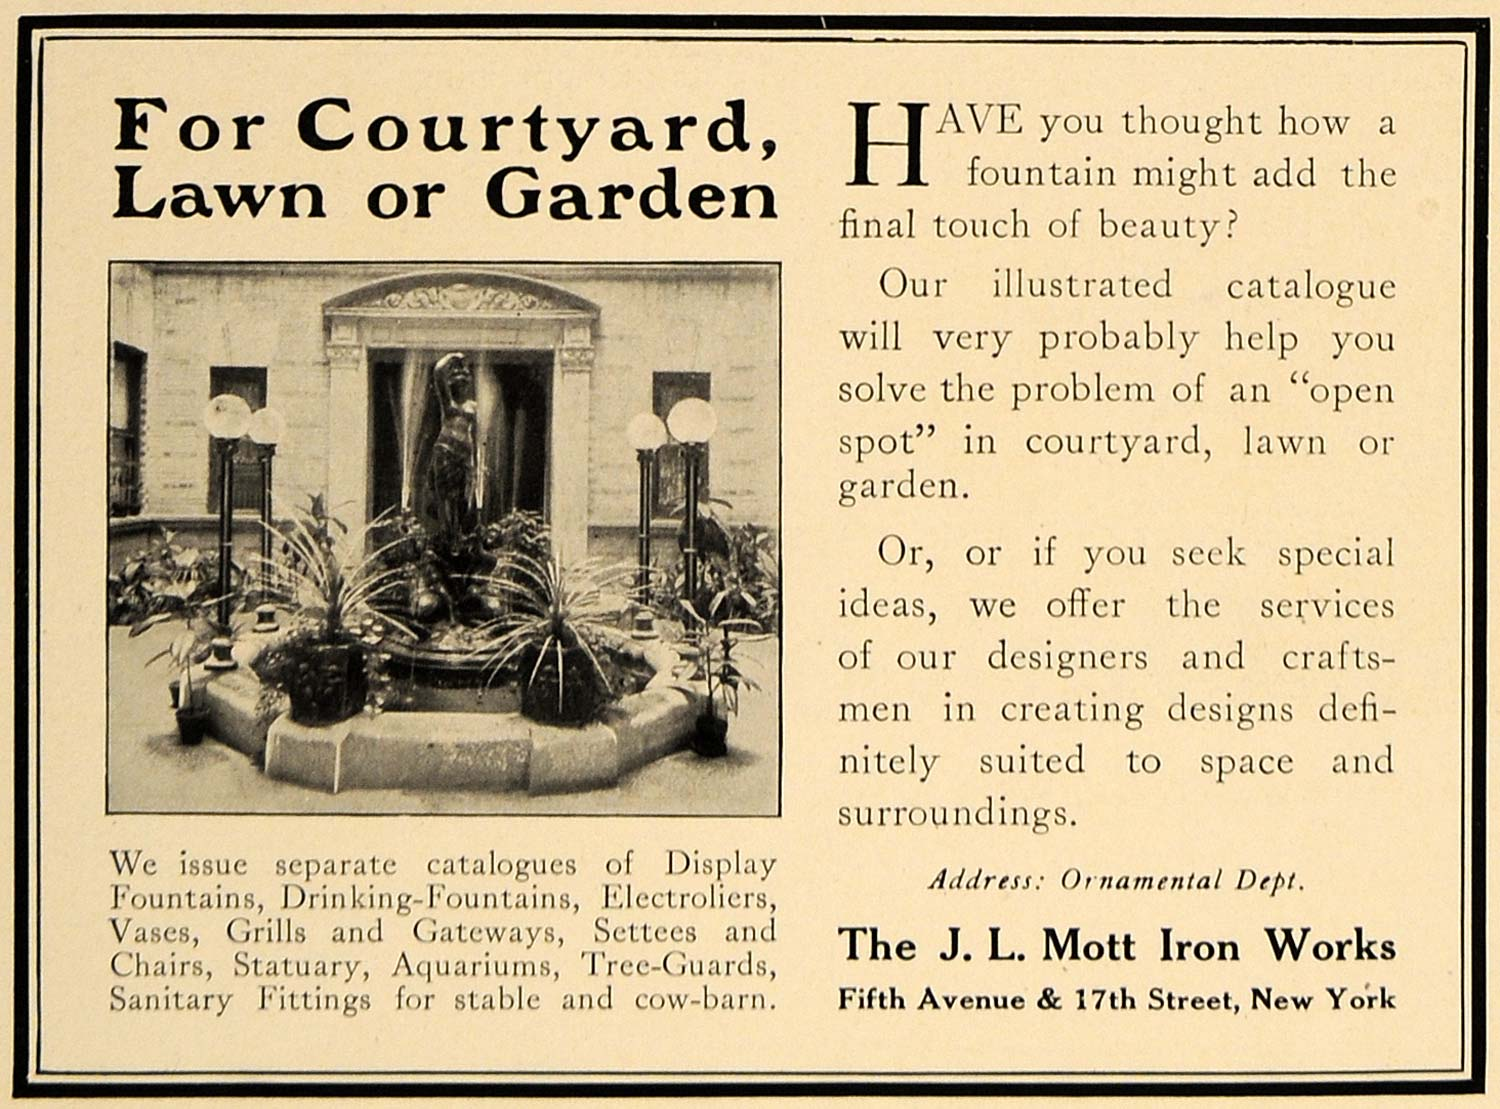 1913 Ad J. L. Mott Iron Works Outdoor Decor Fountains - ORIGINAL ADVERTISING CL8